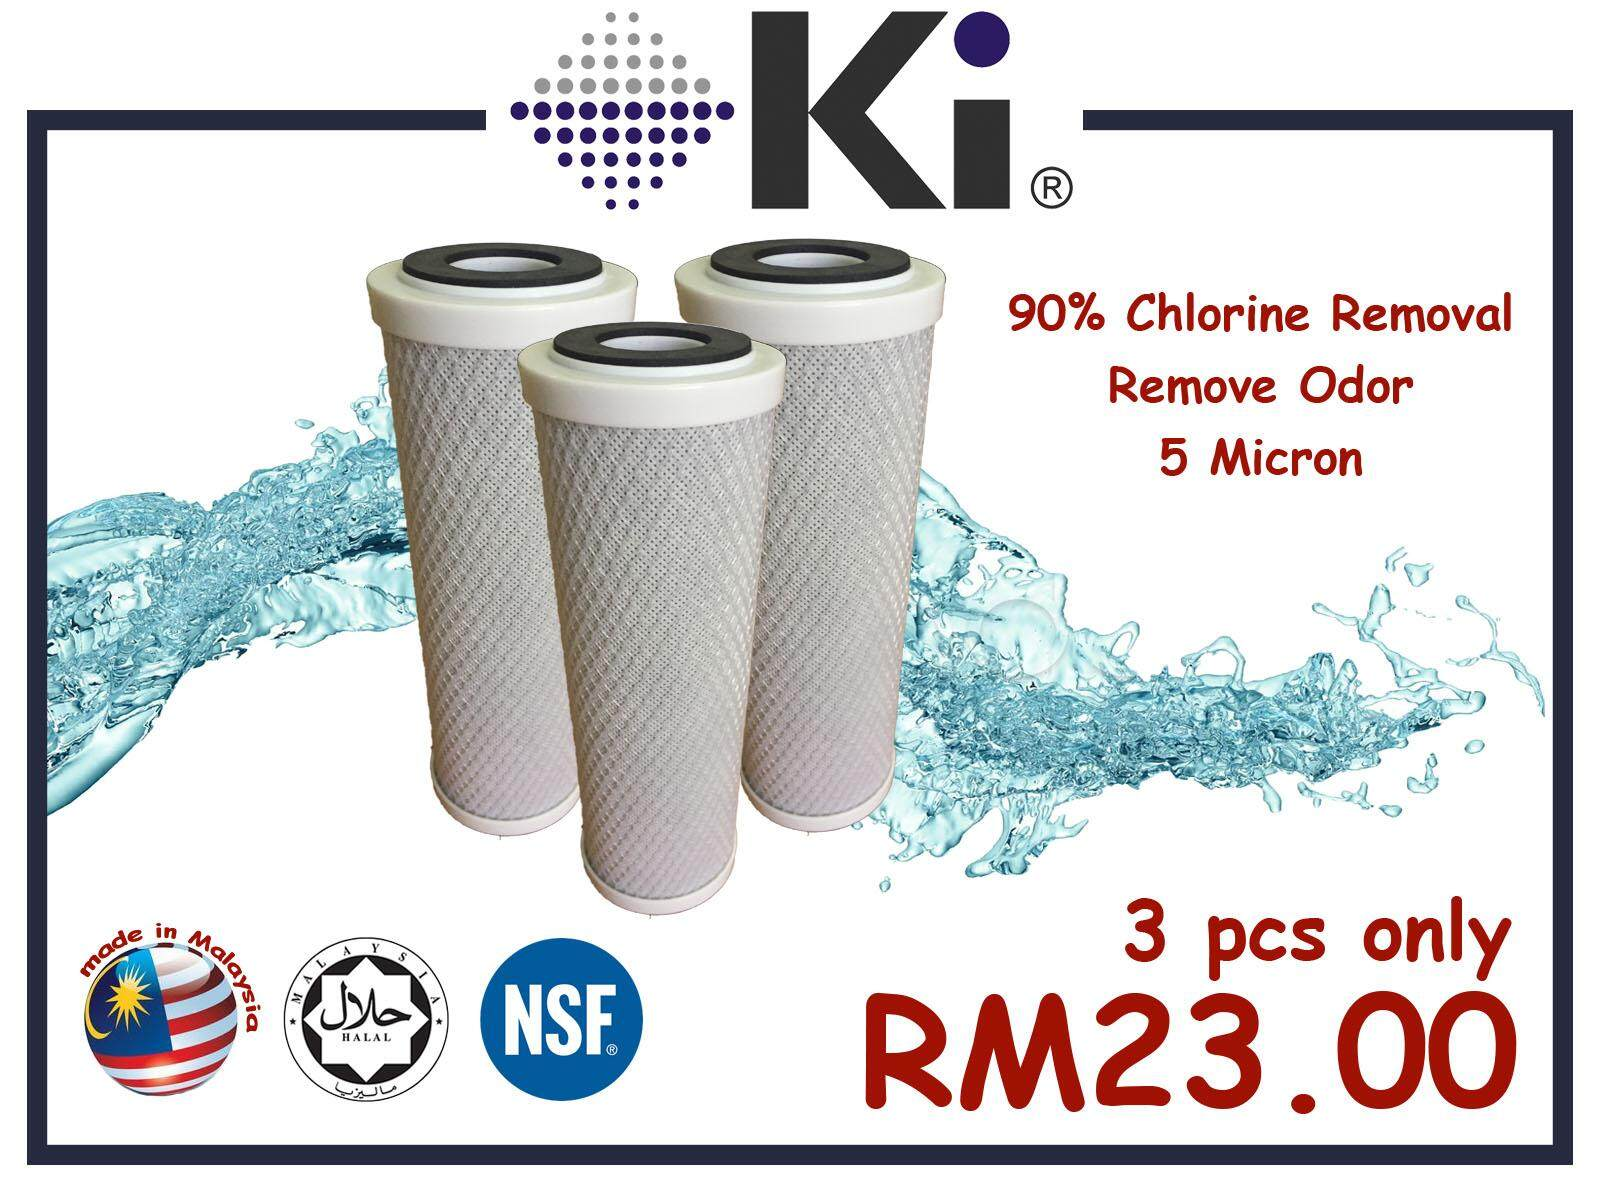 Water Filter Cartridges (halal) - Ki Cto (white) By Ki Carbon.